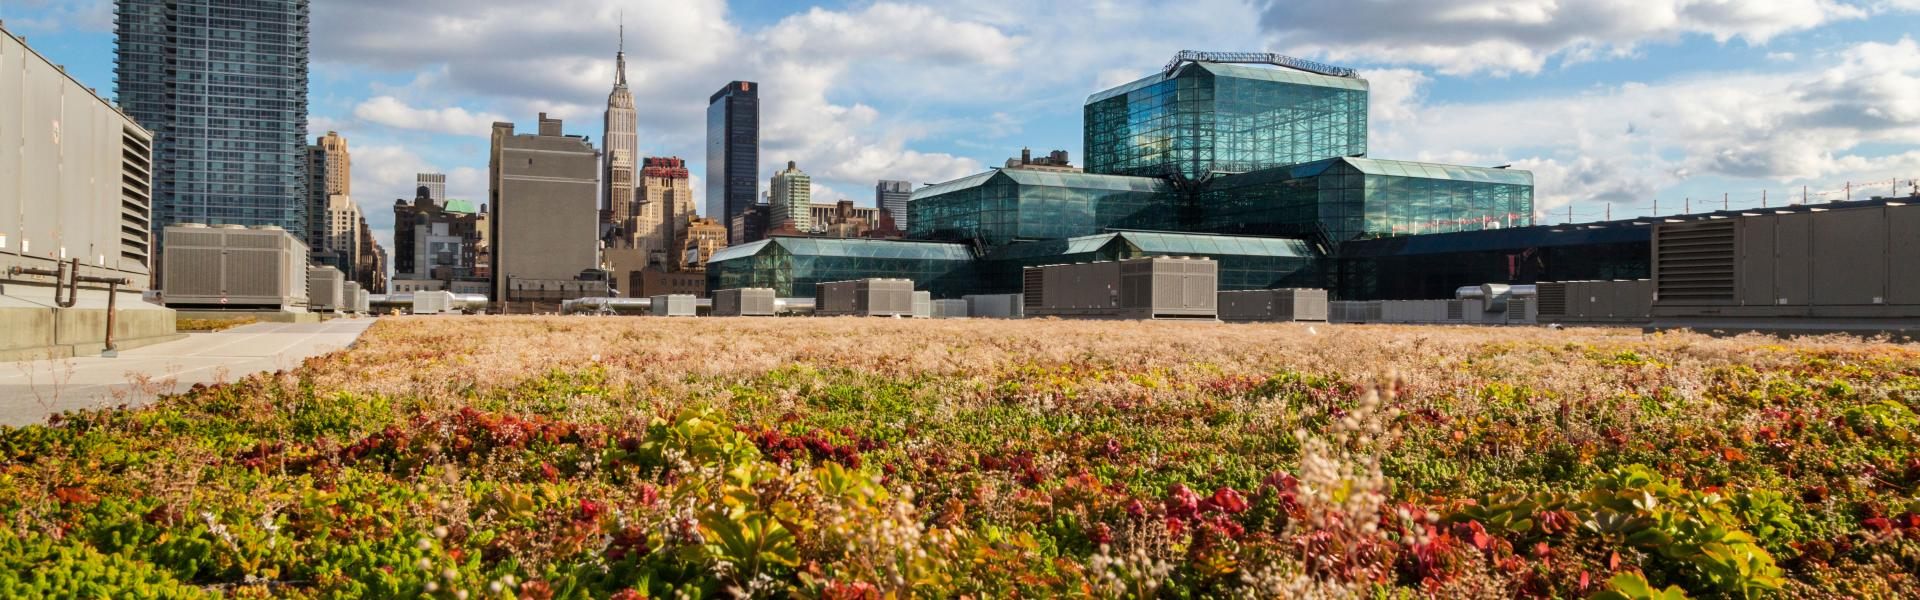 Javits Center, Roof, Green Roof